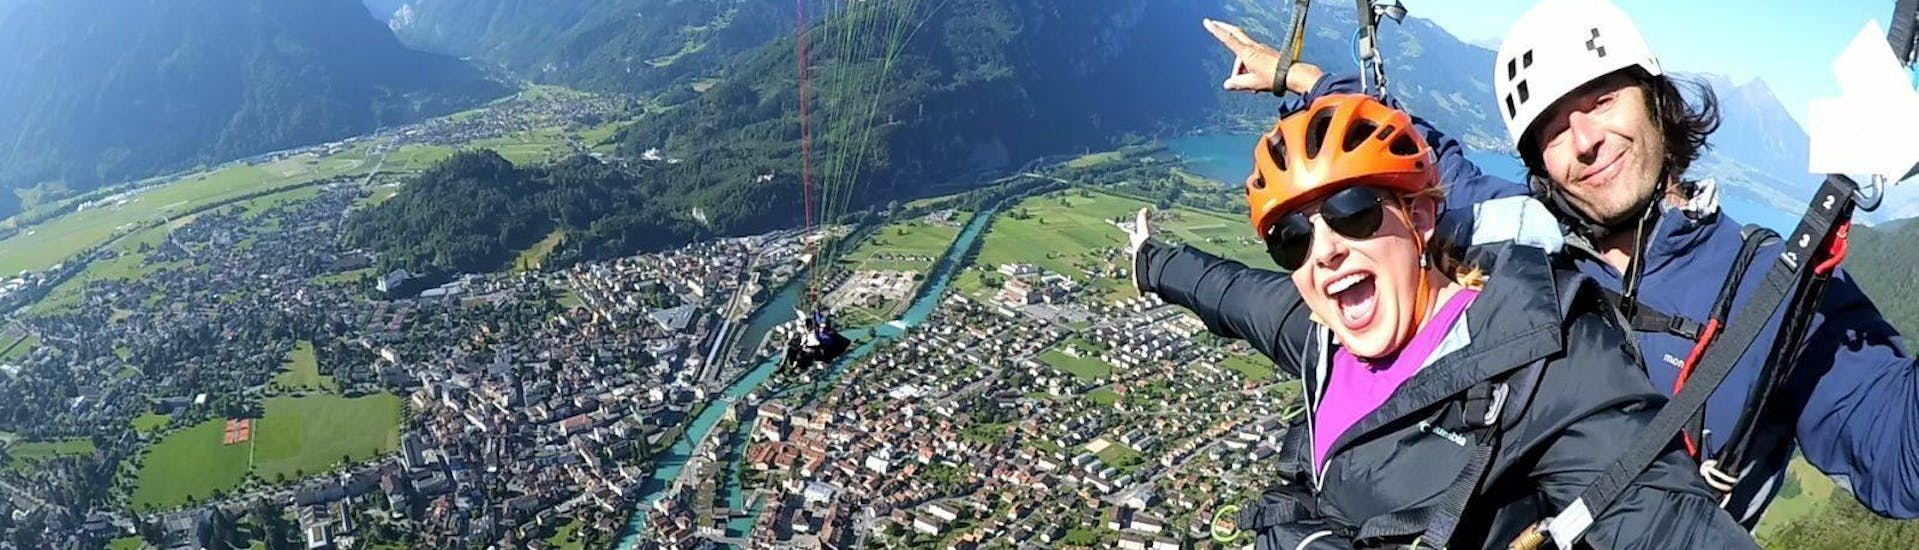 """During the Tandem Paragliding """"The Sensational"""" in  Interlaken, a certified tandem pilot from Twin Paragliding and his passenger are taking a picture while gliding over the beautiful town of Interlaken."""